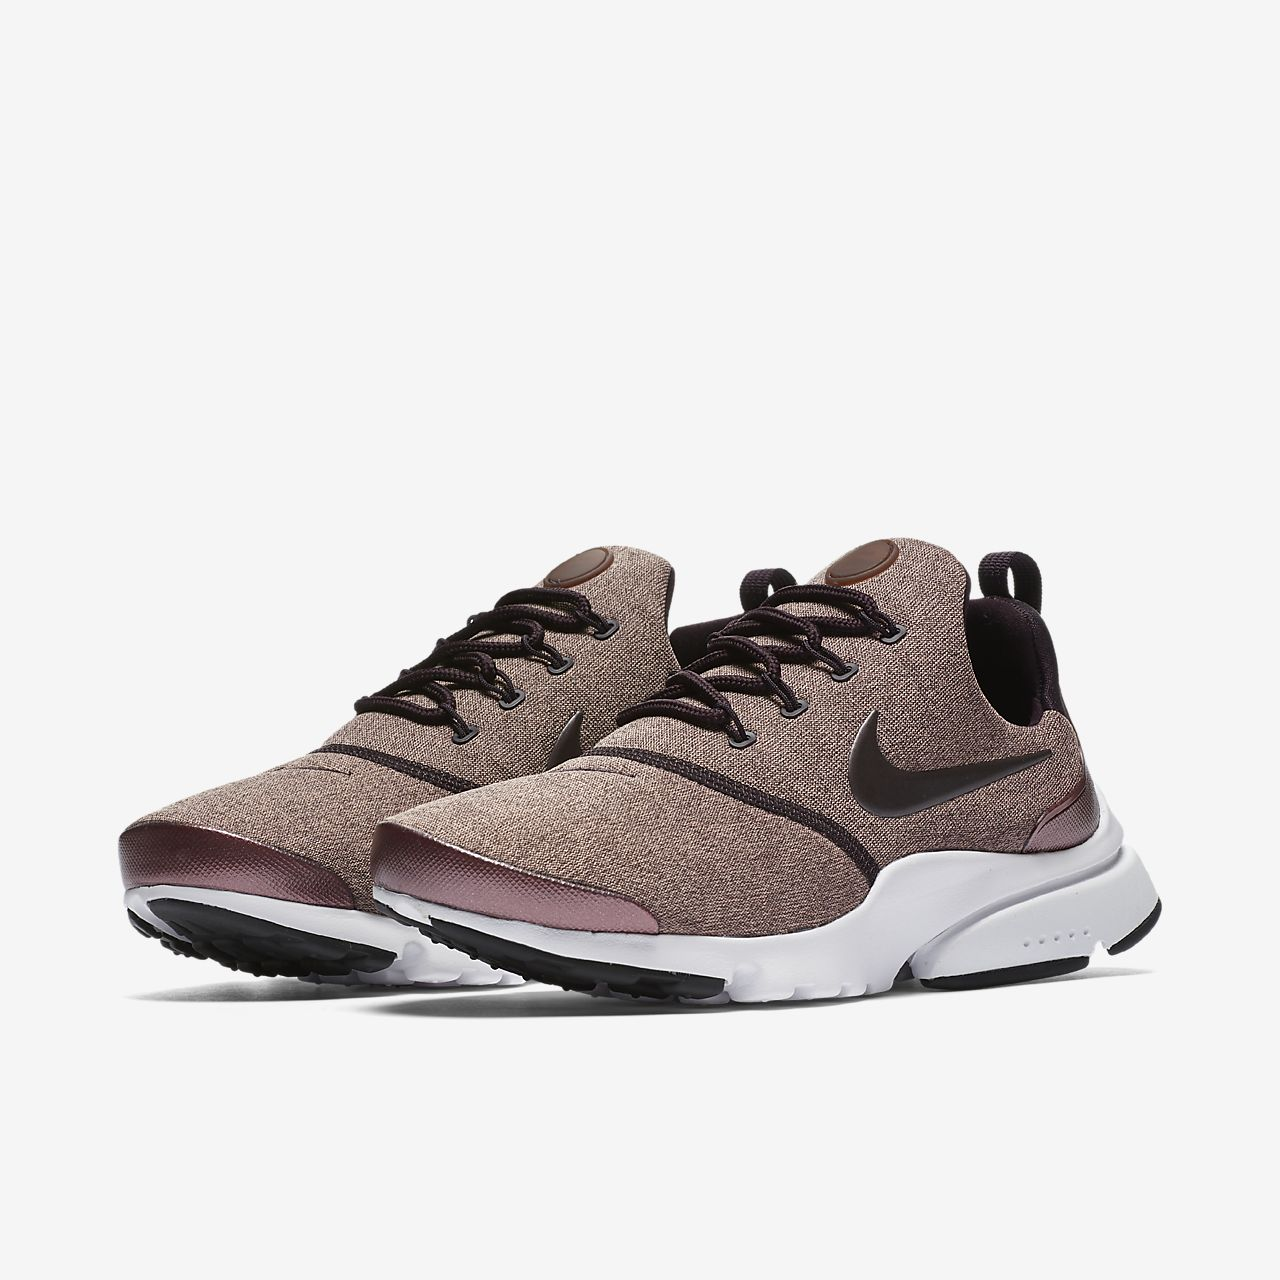 NIKE Womens Nike Presto Fly Se 910570-602 PORT WINE Size 6